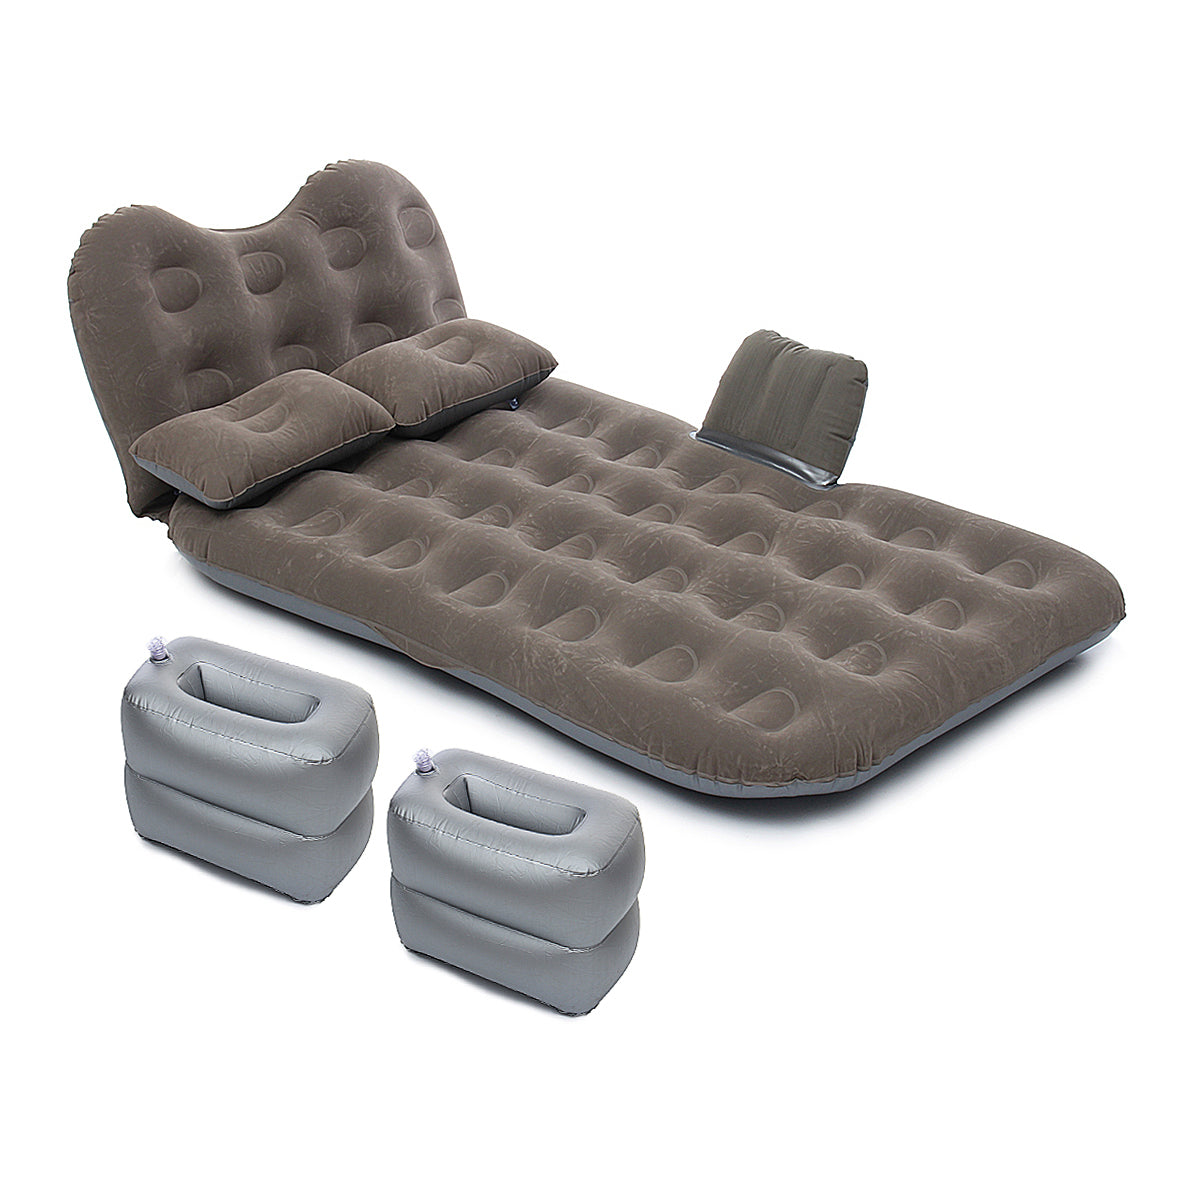 AiryBed™ Car Travel Inflatable Air Mattress Back Seat Portable Camping Bed Cushion with Back Support